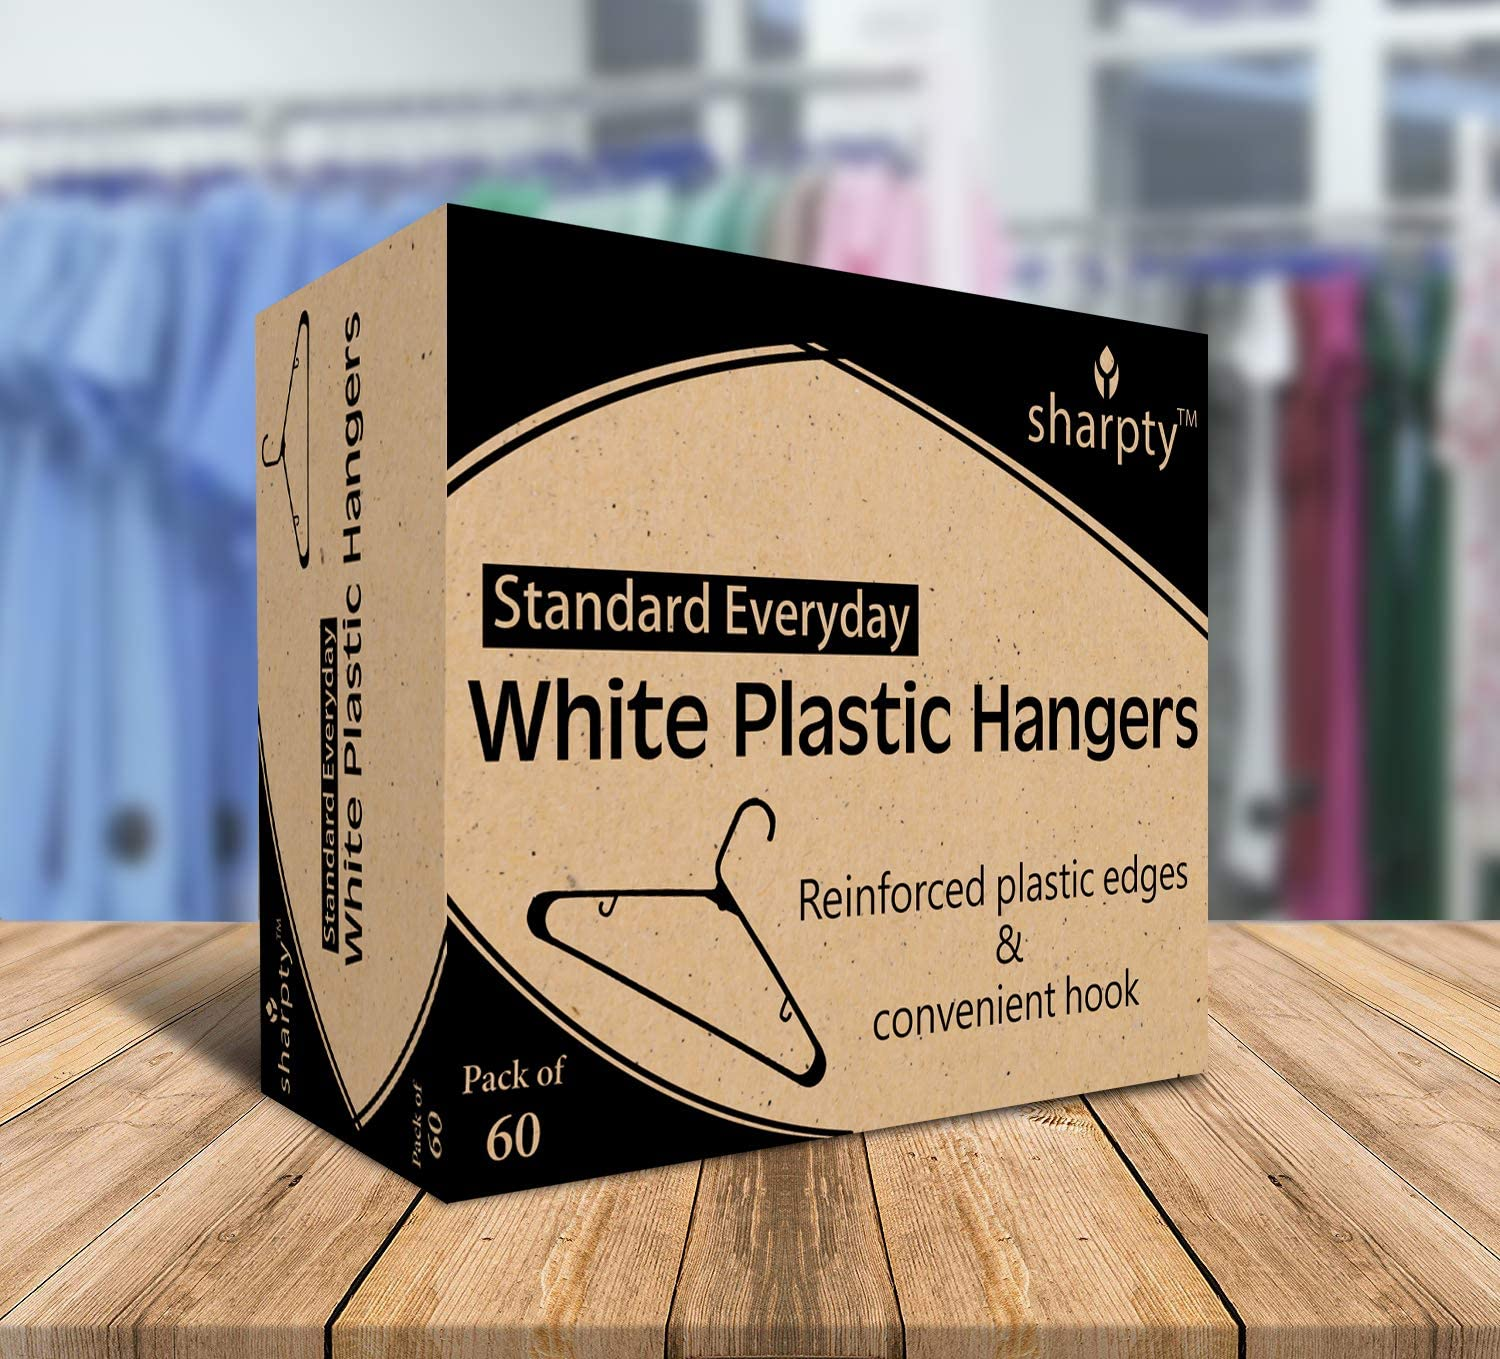 Clothing Hangers Sharpty White Plastic Hangers 20 Pack Plastic Clothes Hangers Ideal for Everyday Standard Use